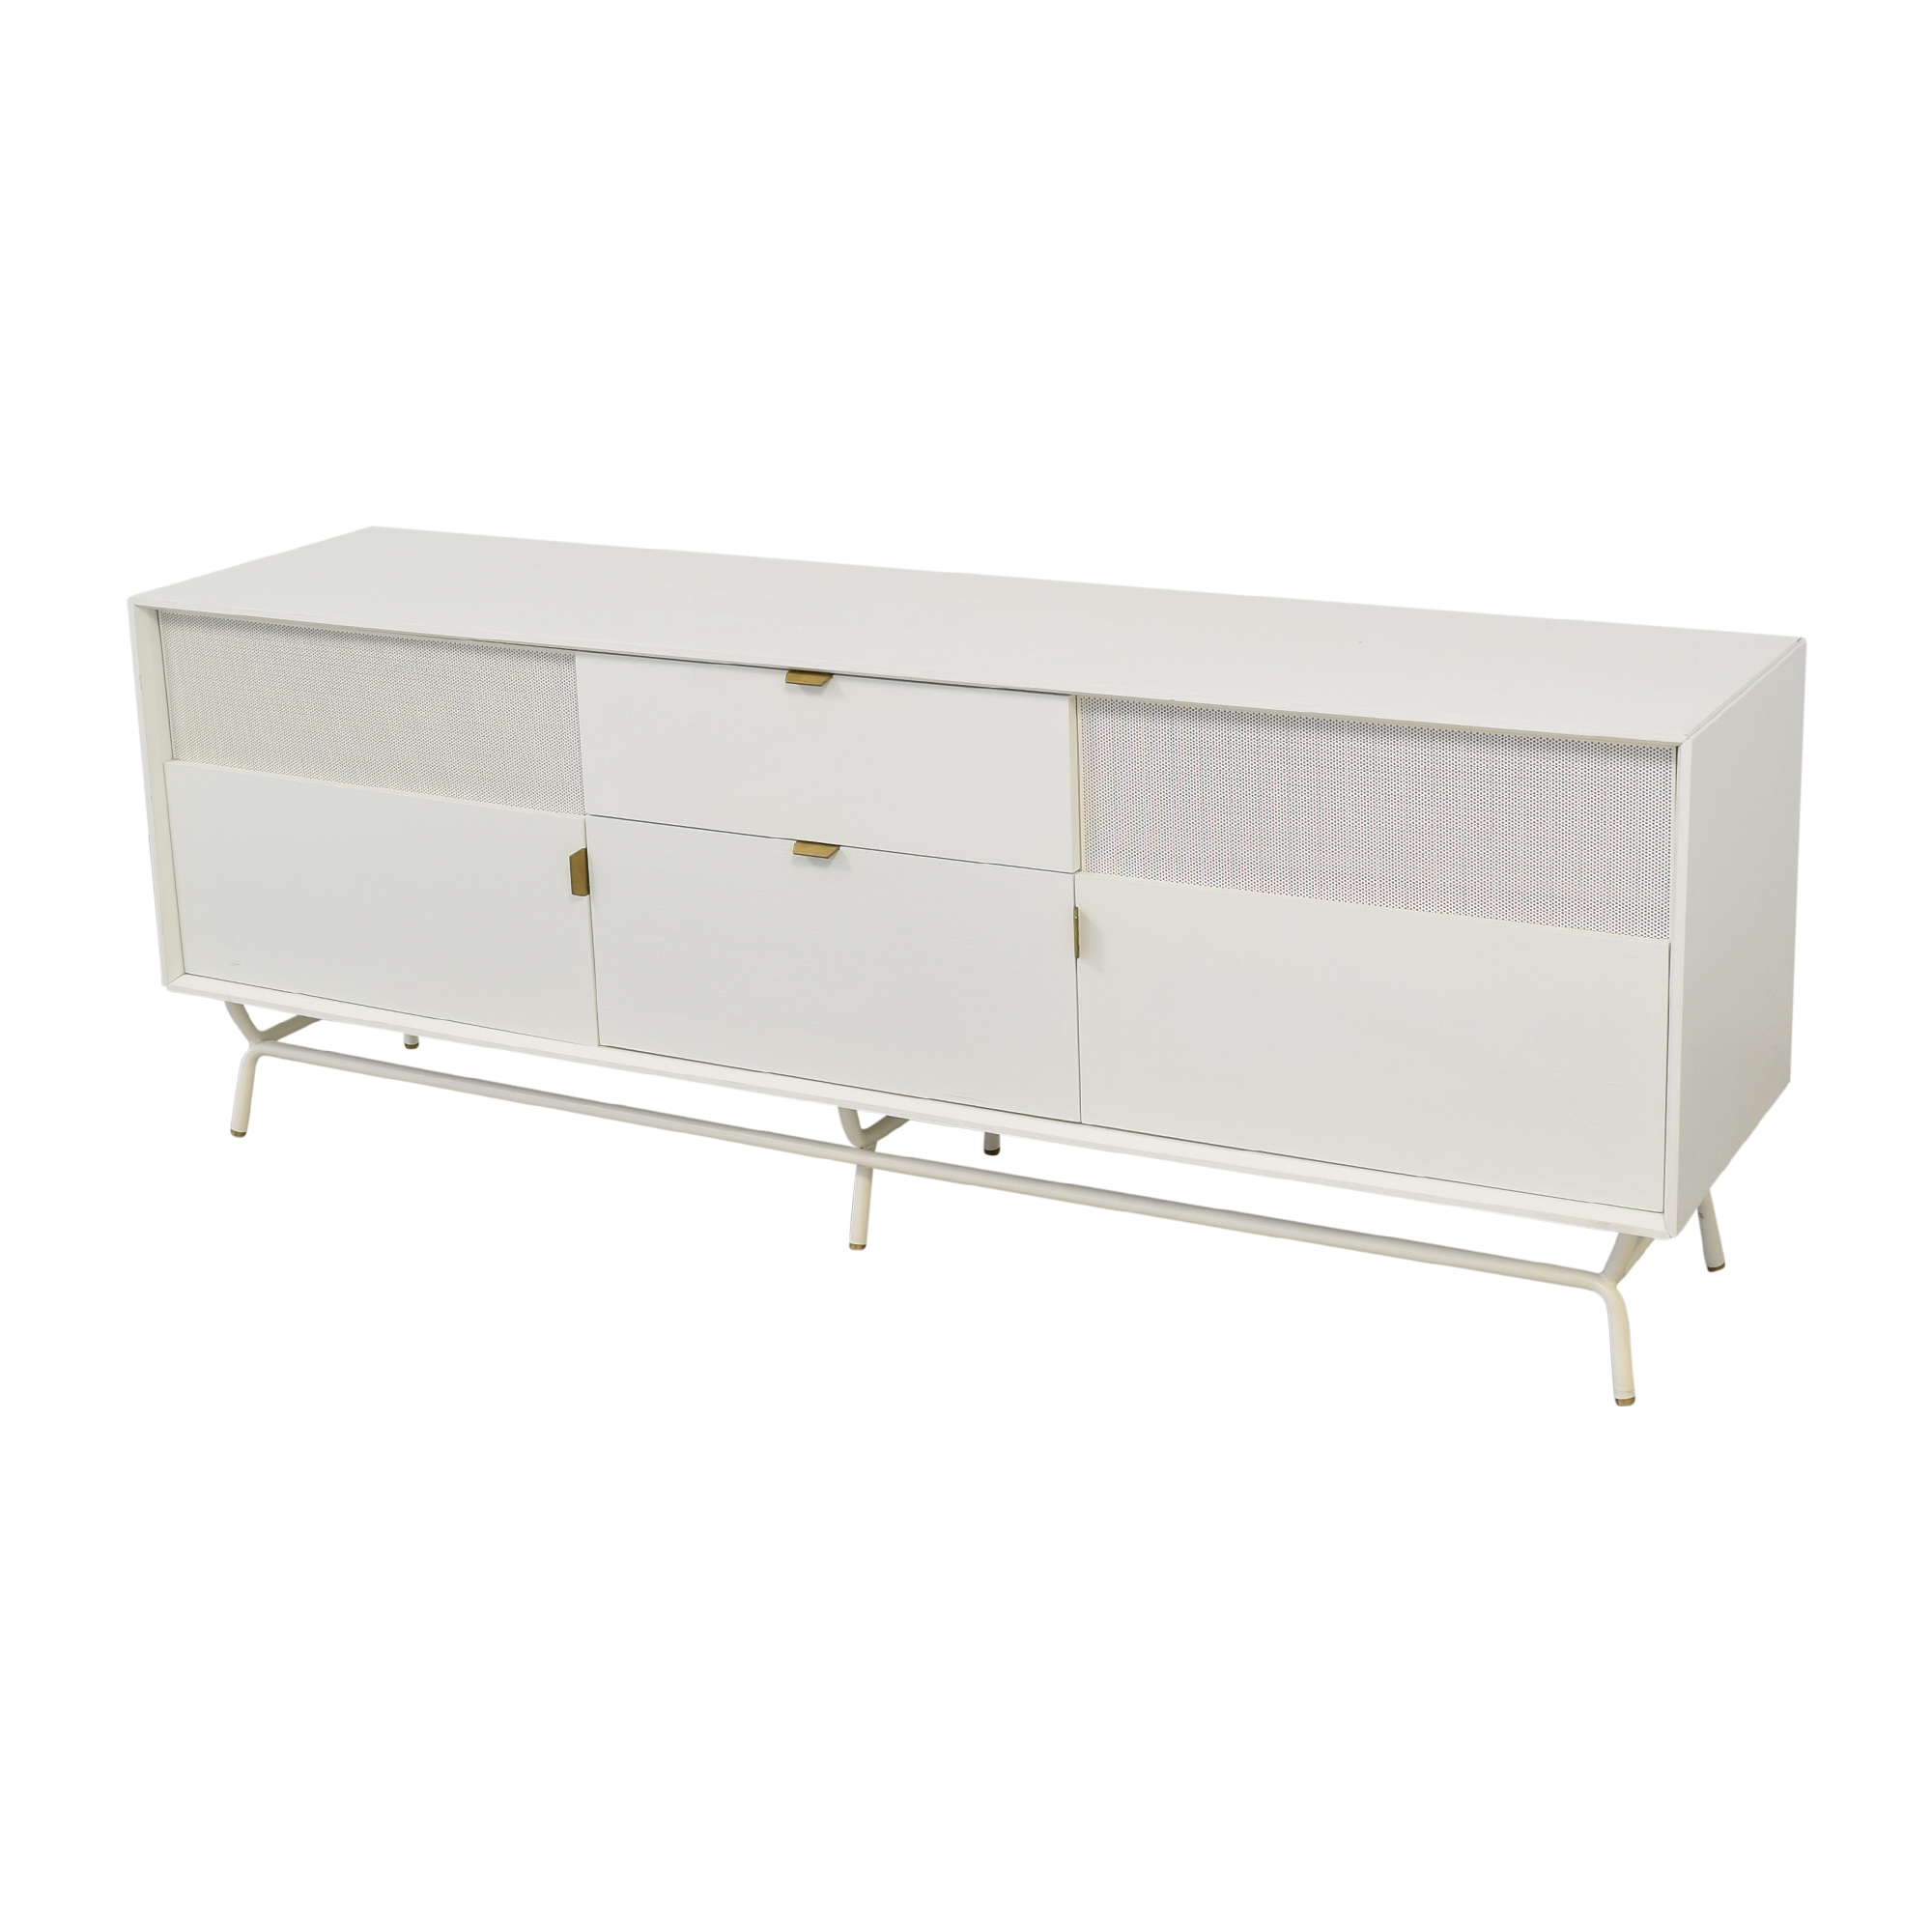 Blu Dot Blu Dot Dang 2 Door / 2 Drawer Console price